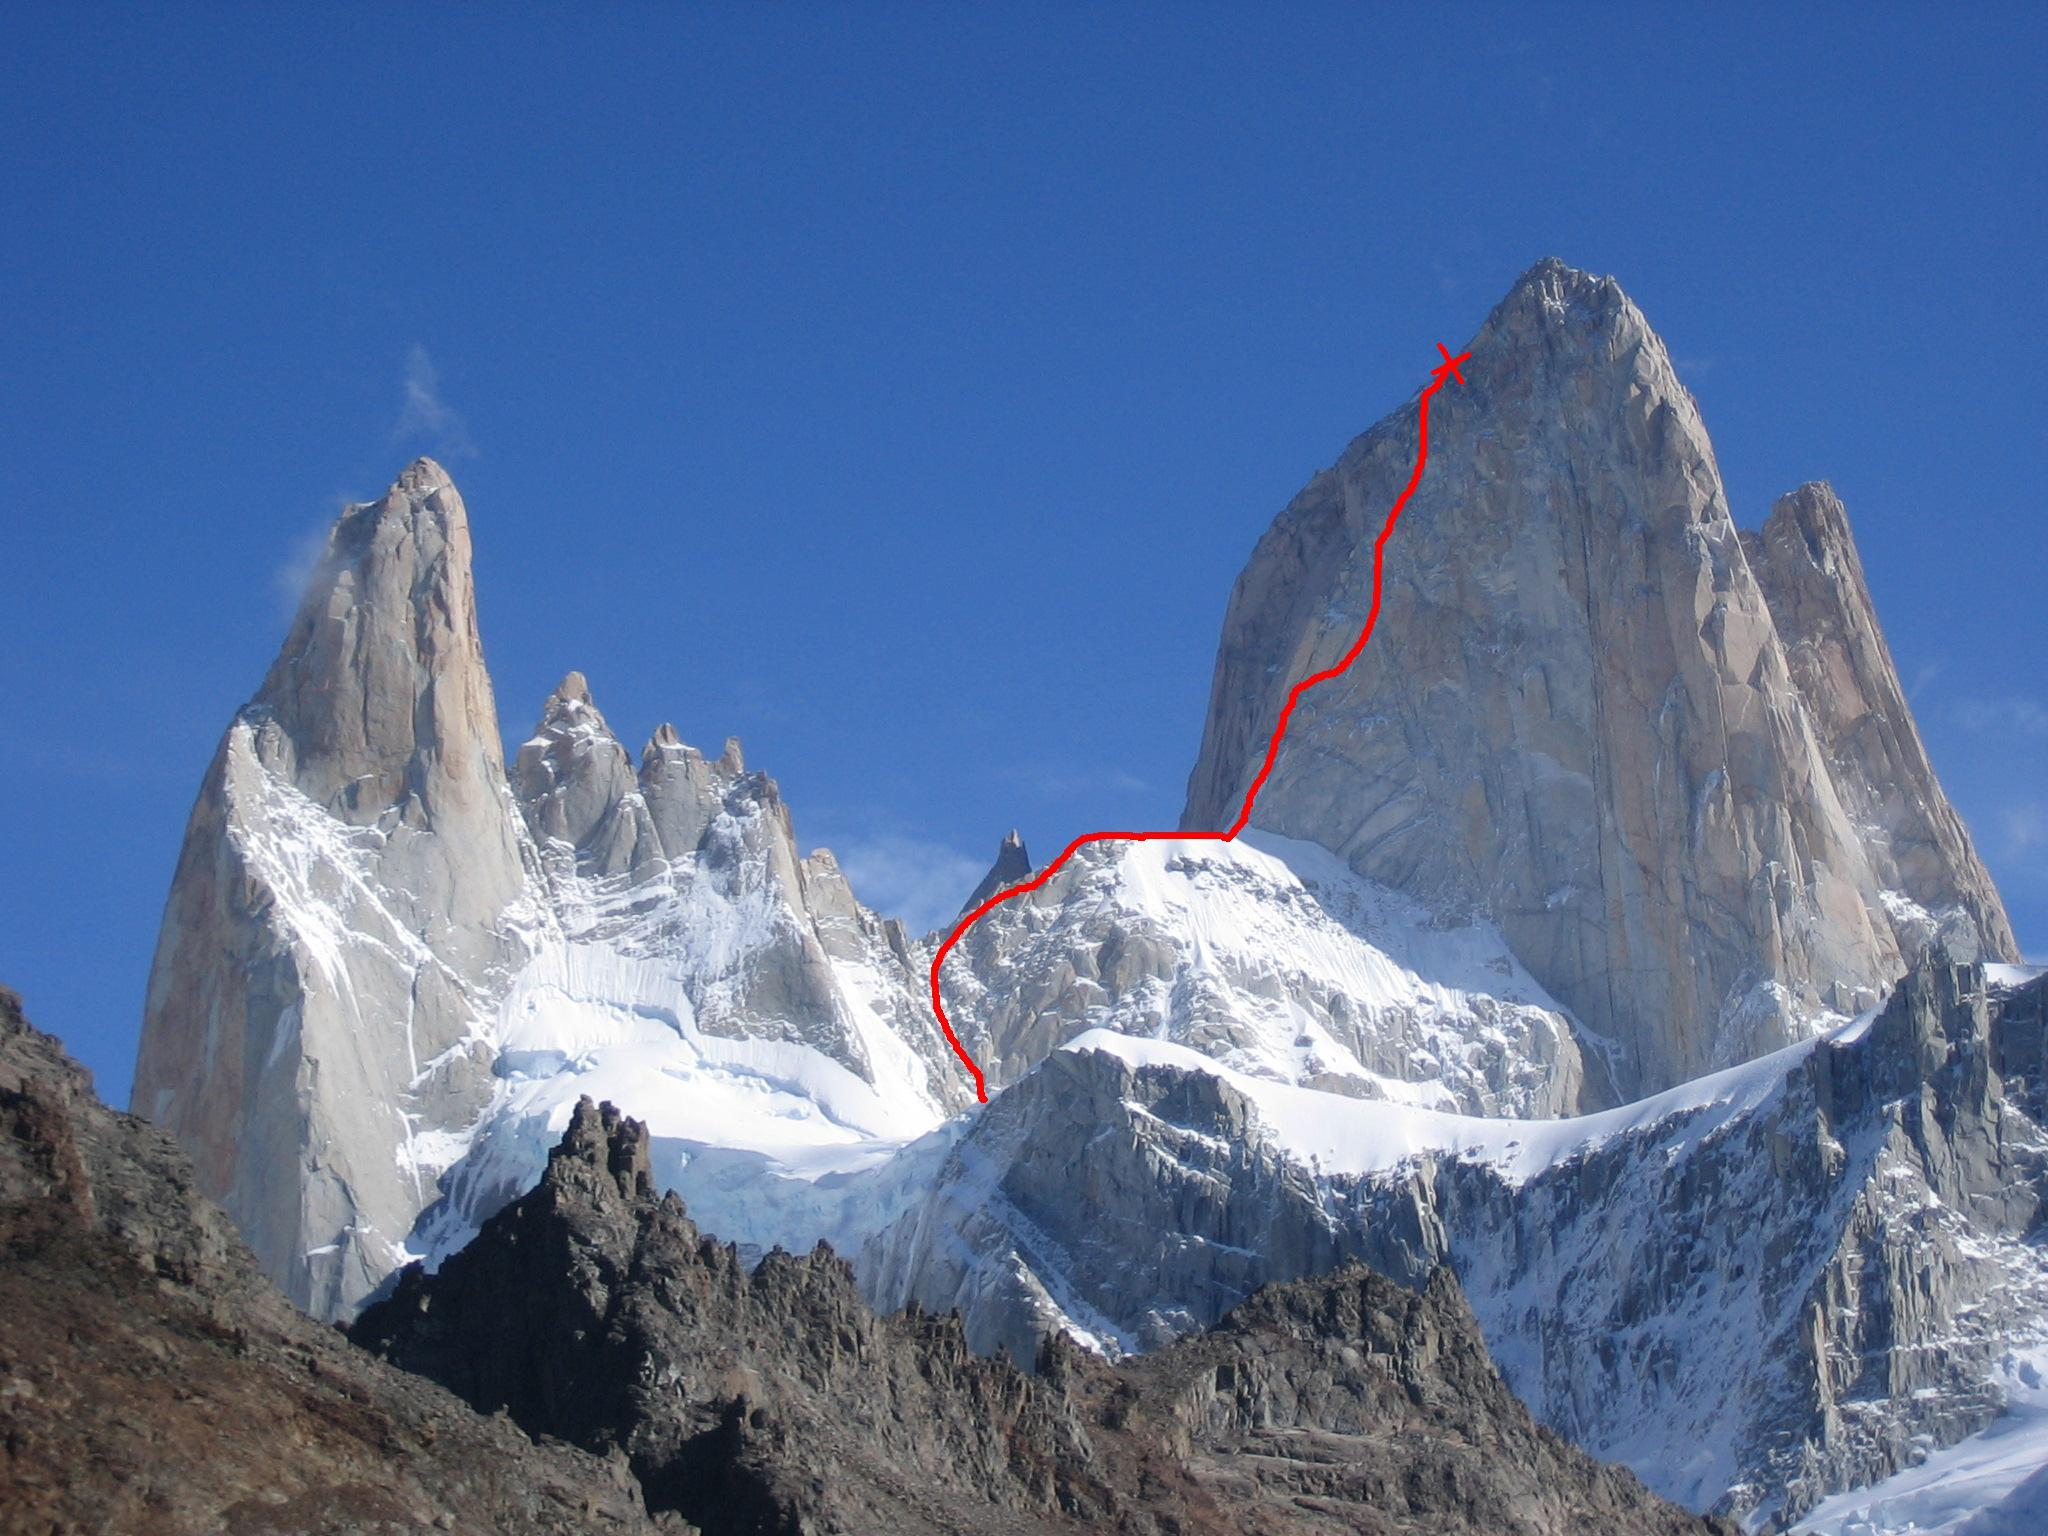 Franco-Argentino on Fitz Roy, Patagonia